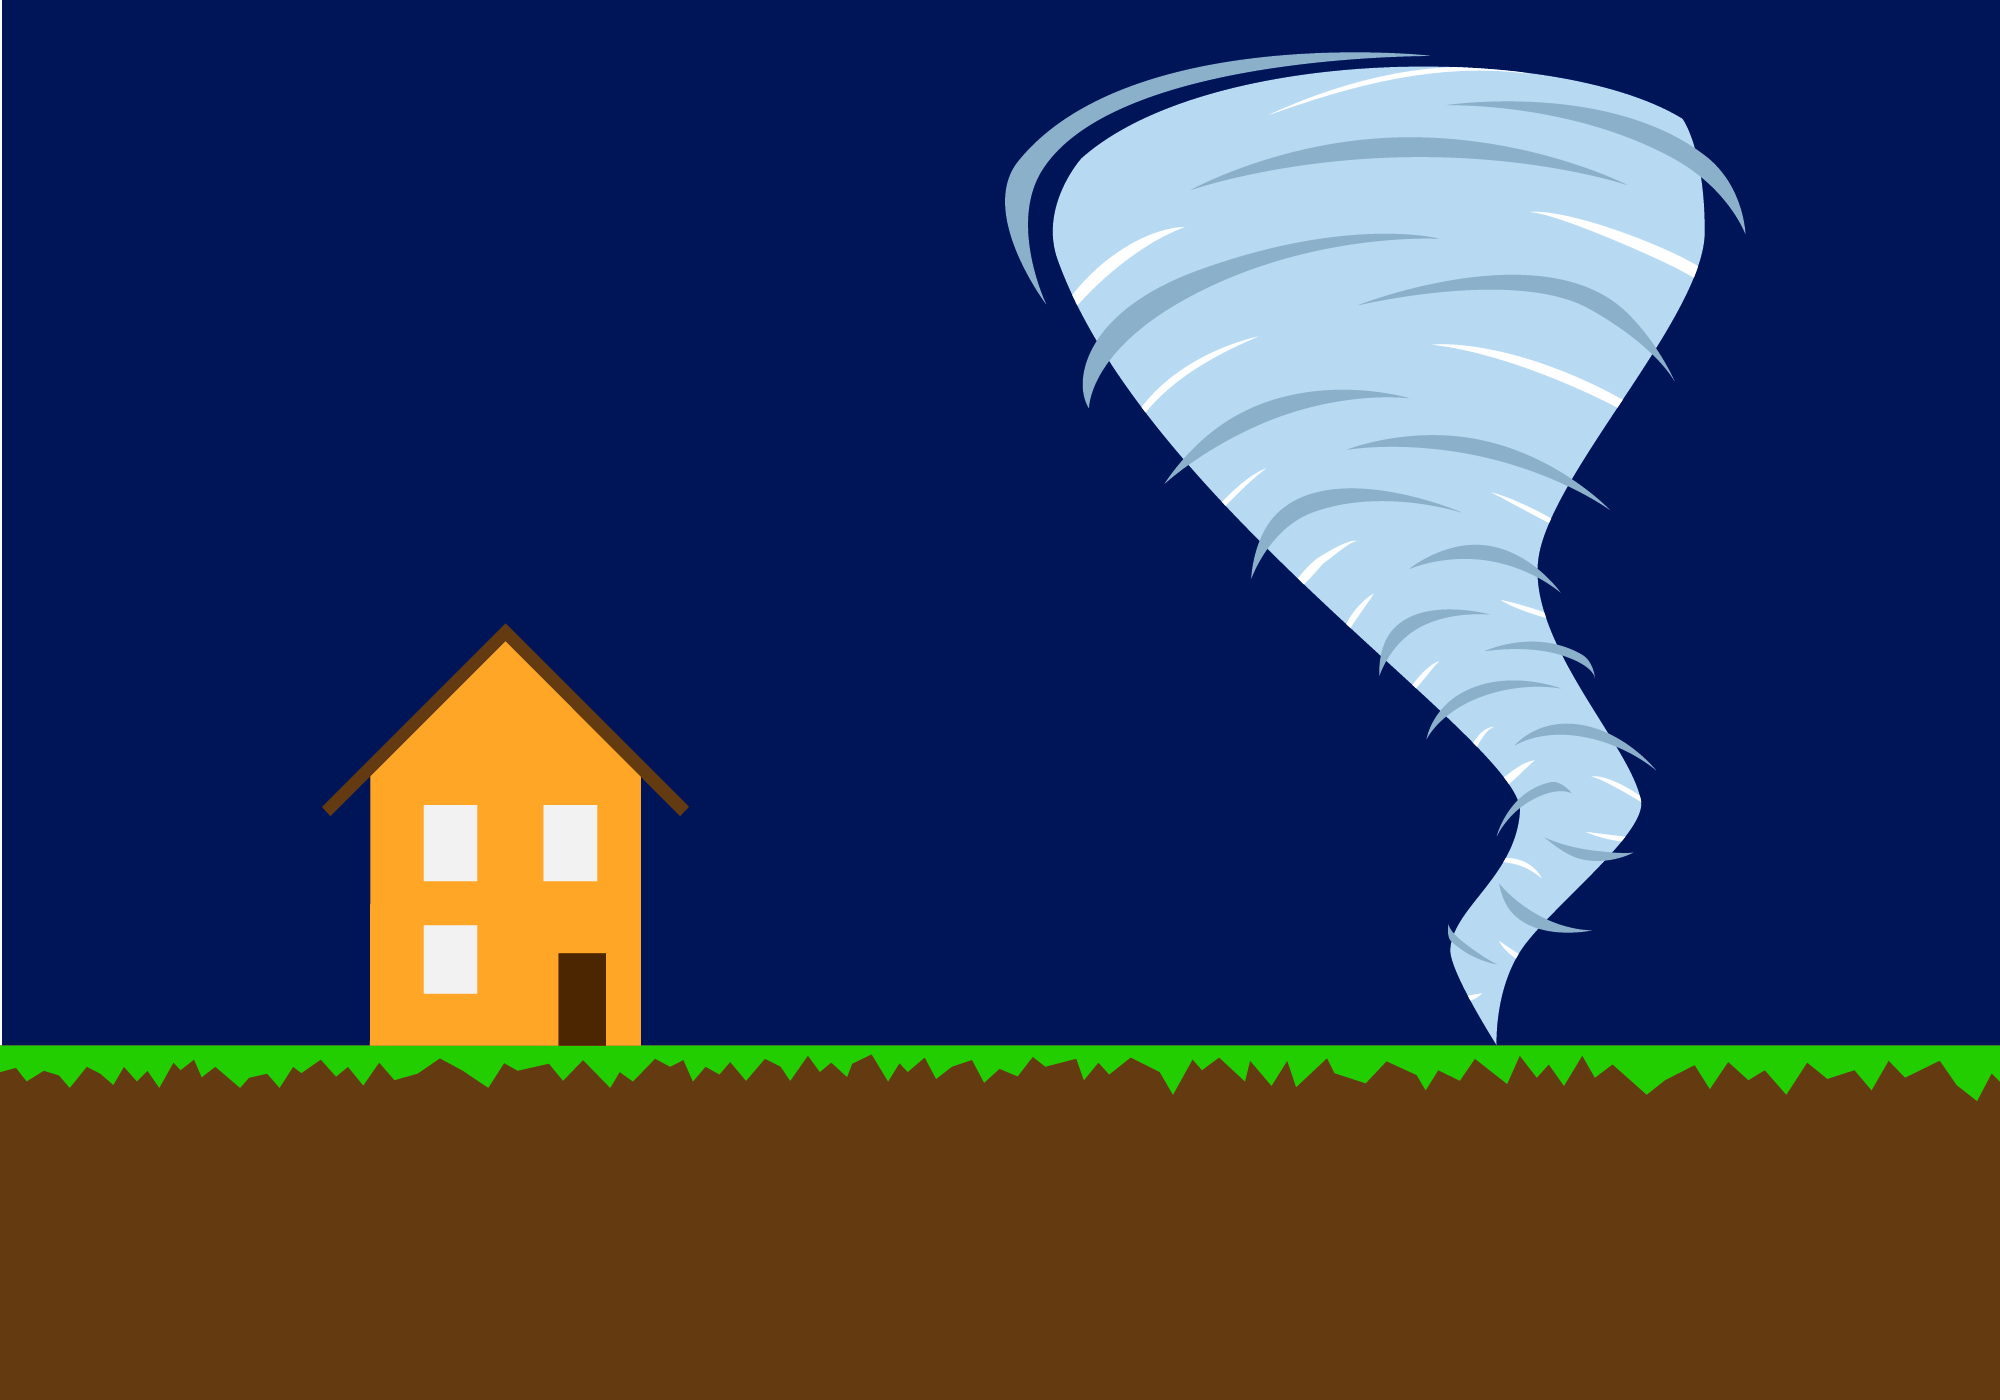 Illustration of a tornado approaching a home. Image Credit: Nathanael Rieger